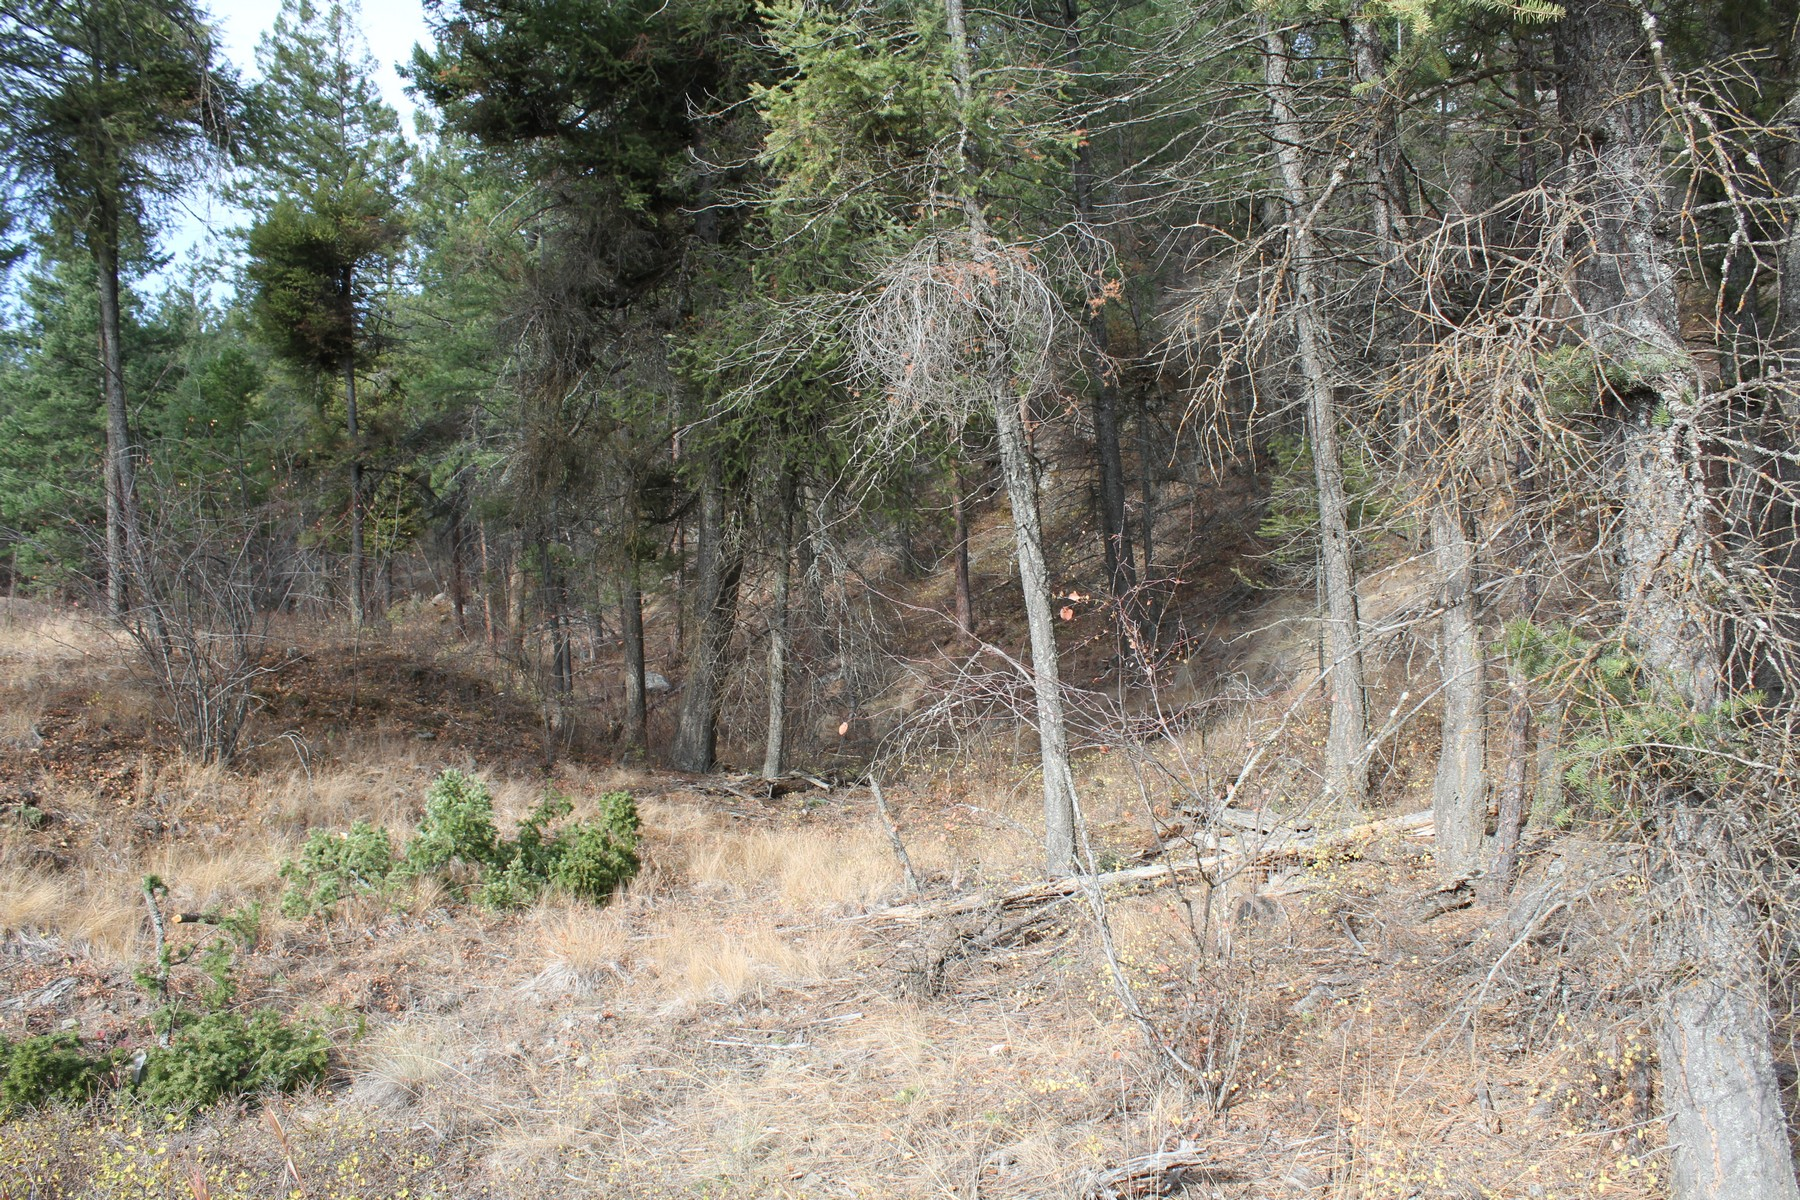 Land for Sale at 416 S 416 S Eighty Drive , Somers, MT 59932 Somers, Montana 59932 United States